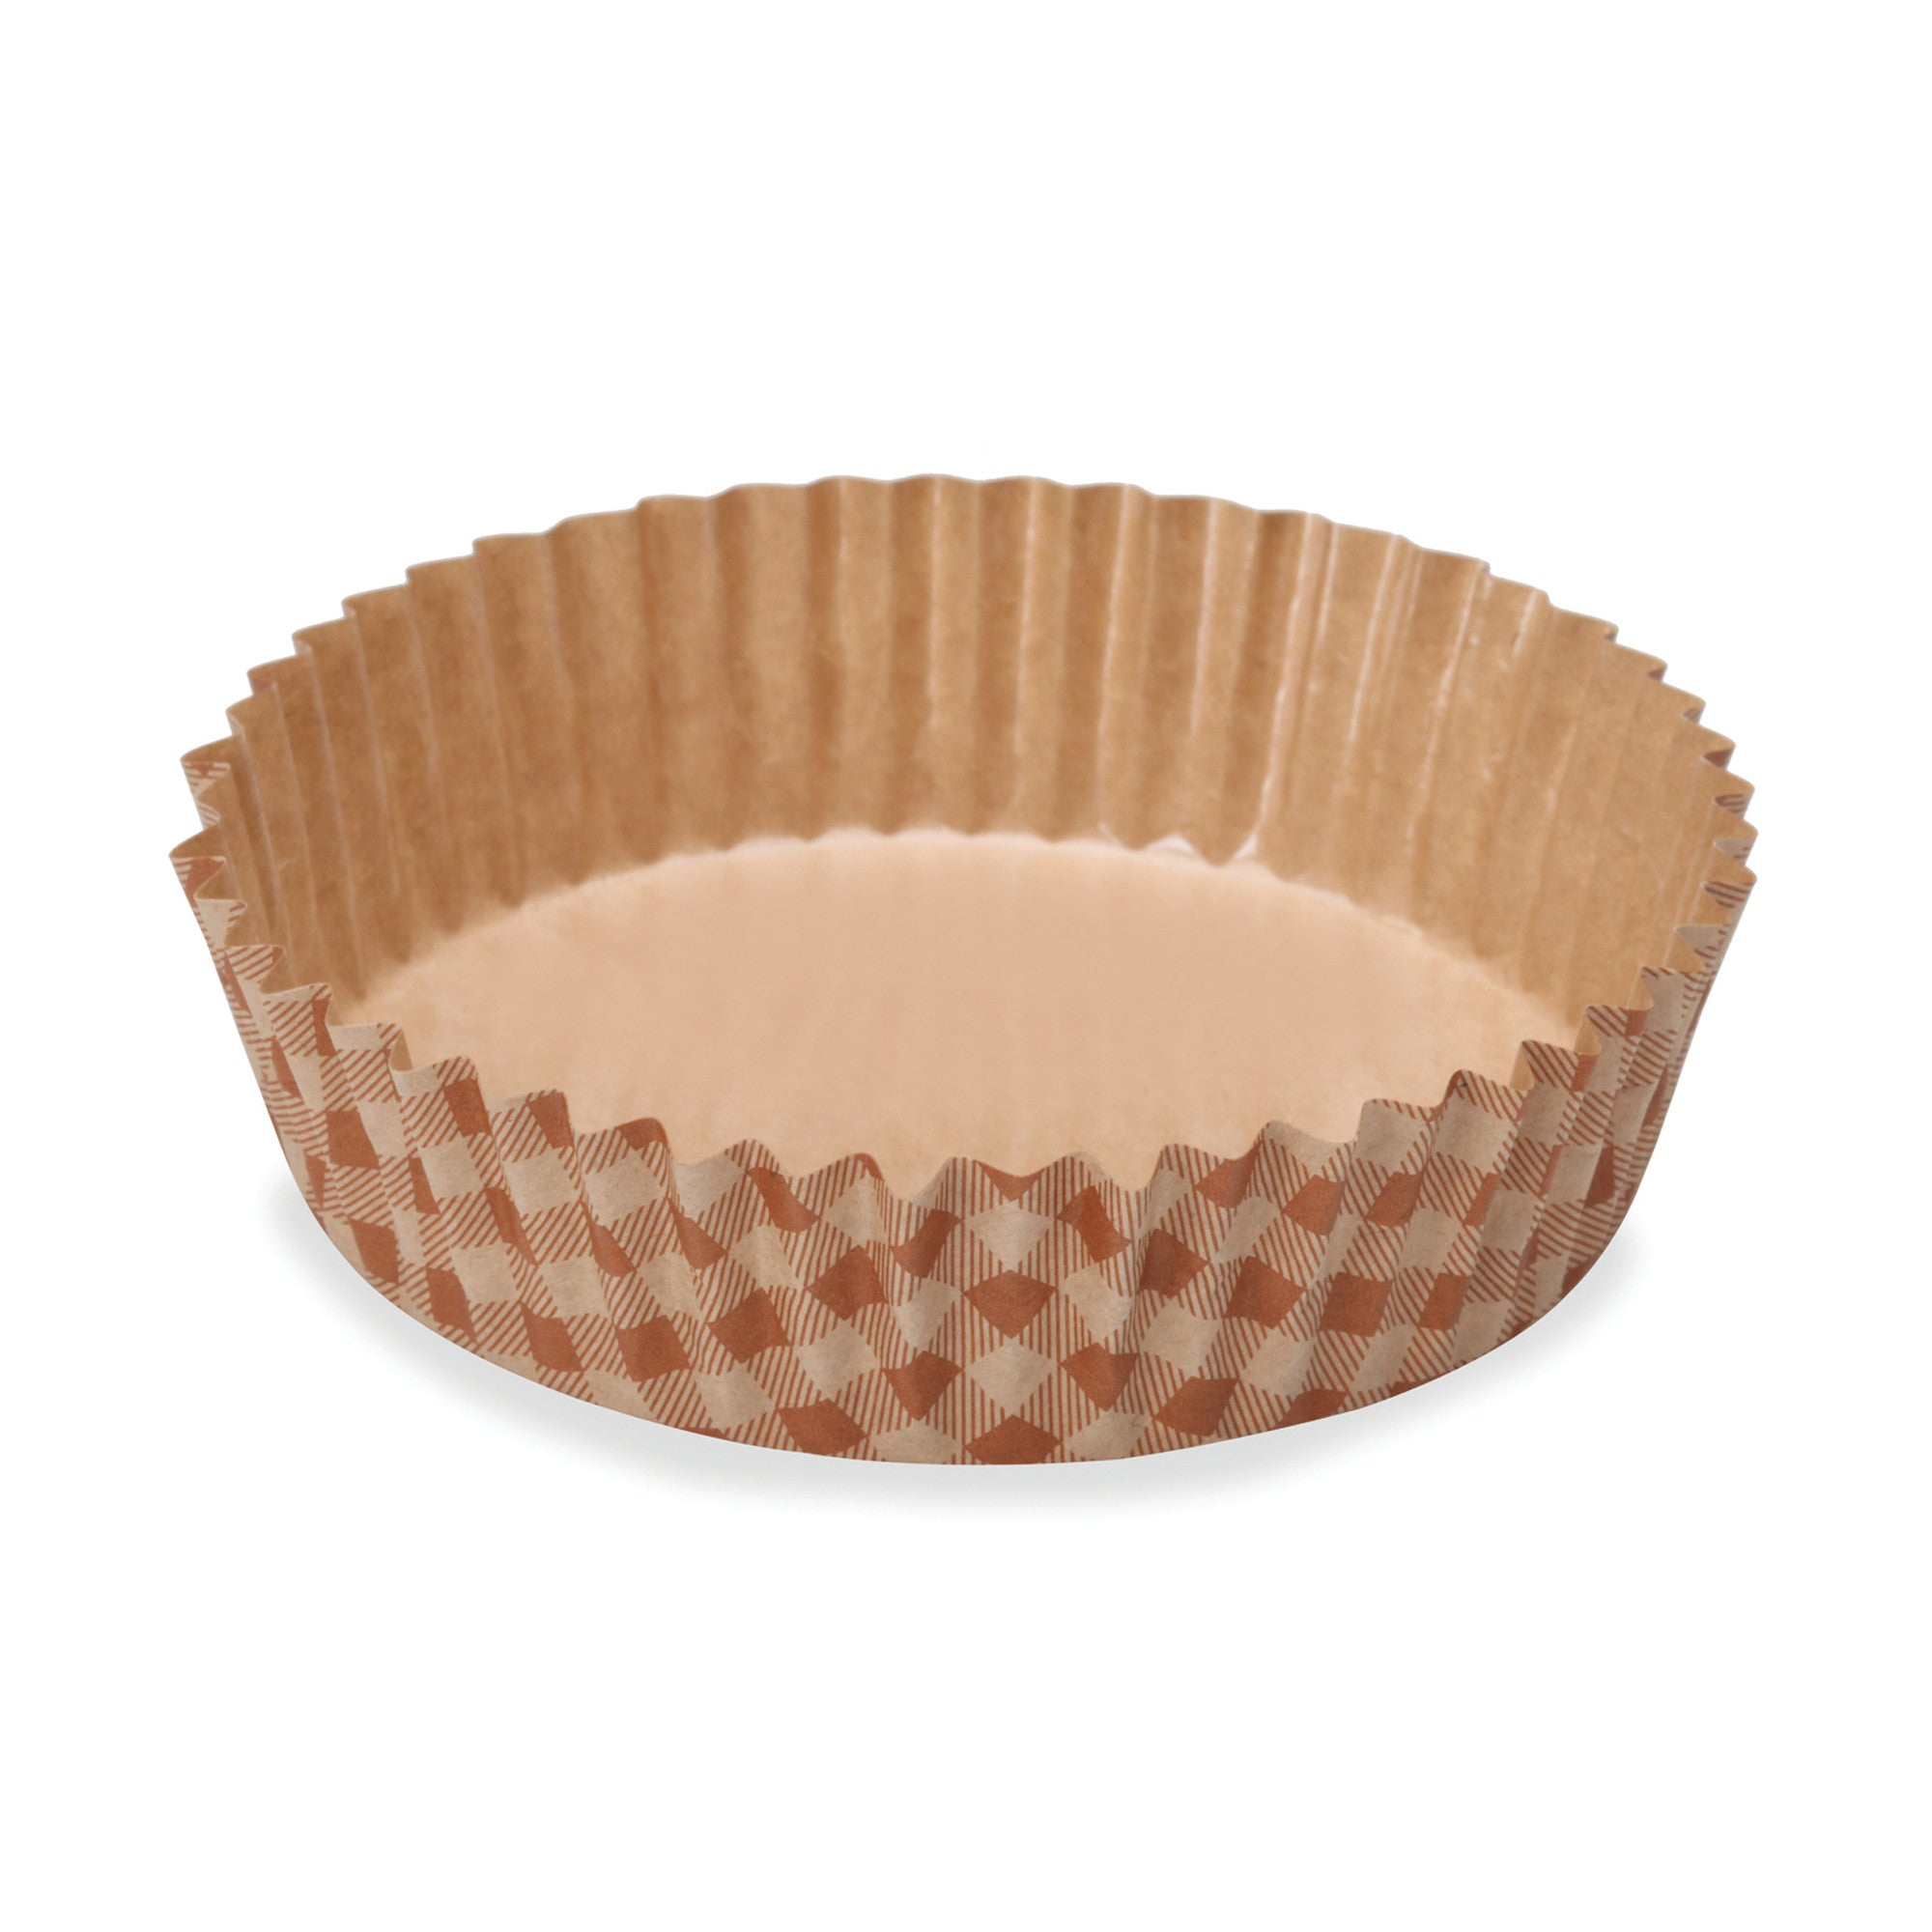 Ruffled Baking Cups, PTC10030CK - Welcome Home Brands